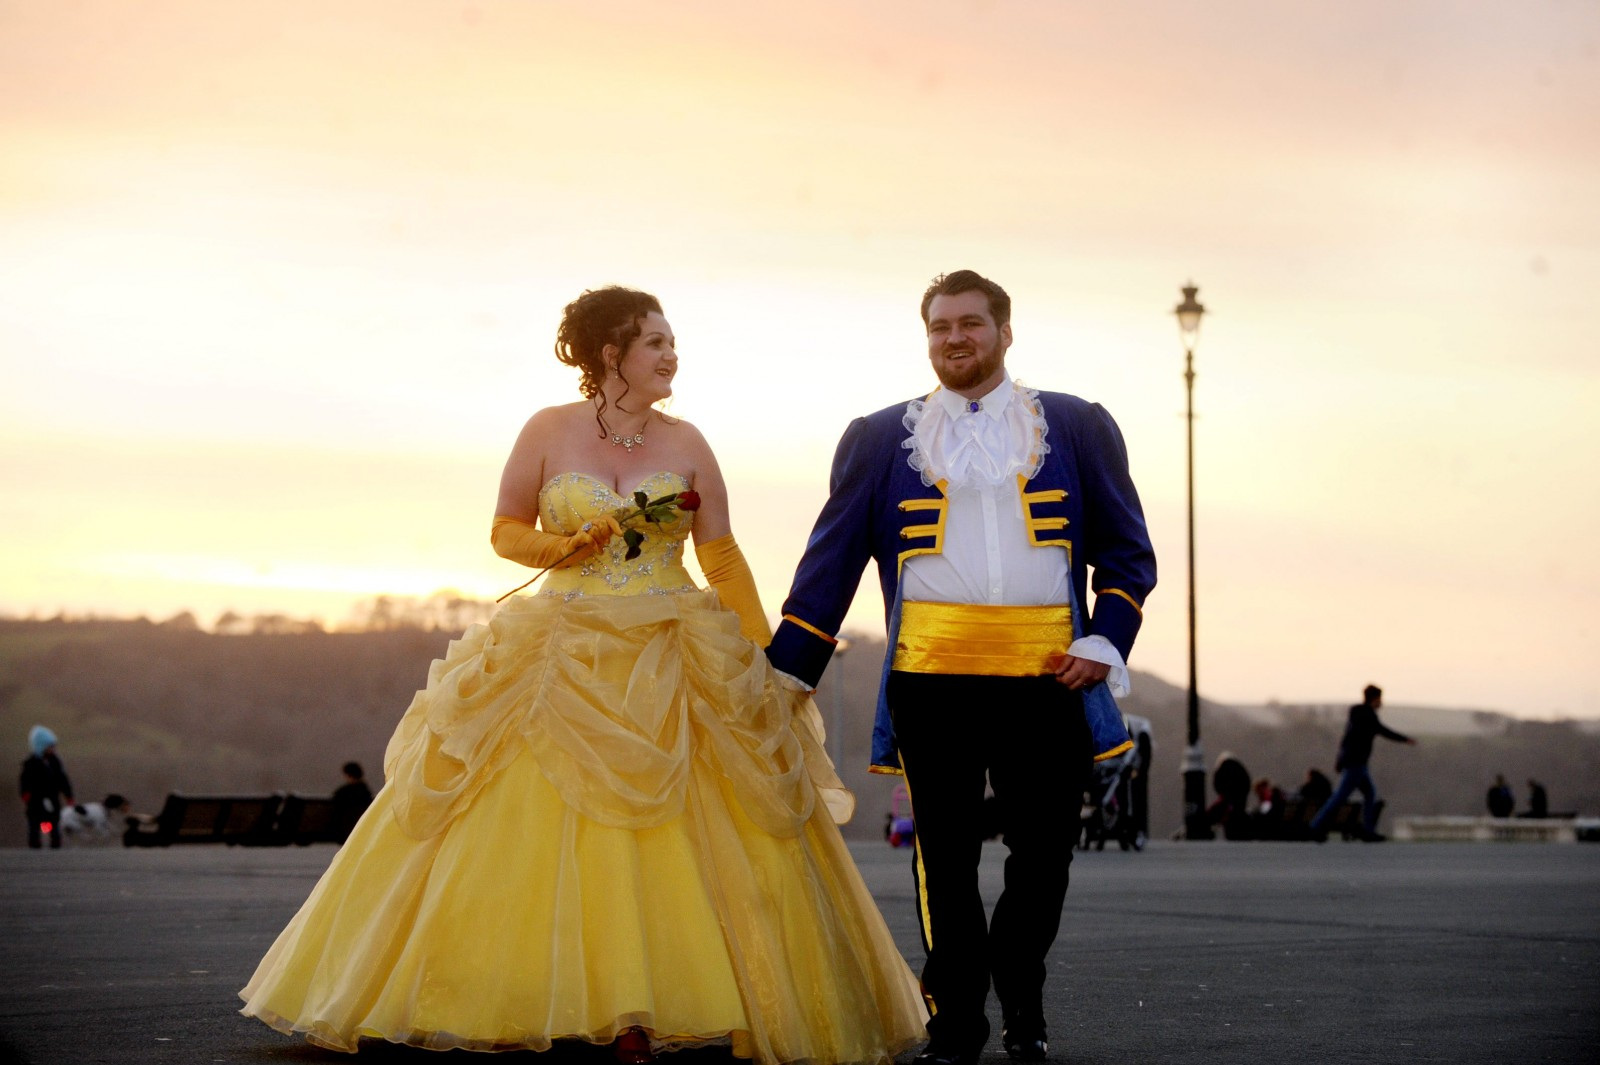 Wedding Belle! The special day inspired by the ultimate fairy-tale